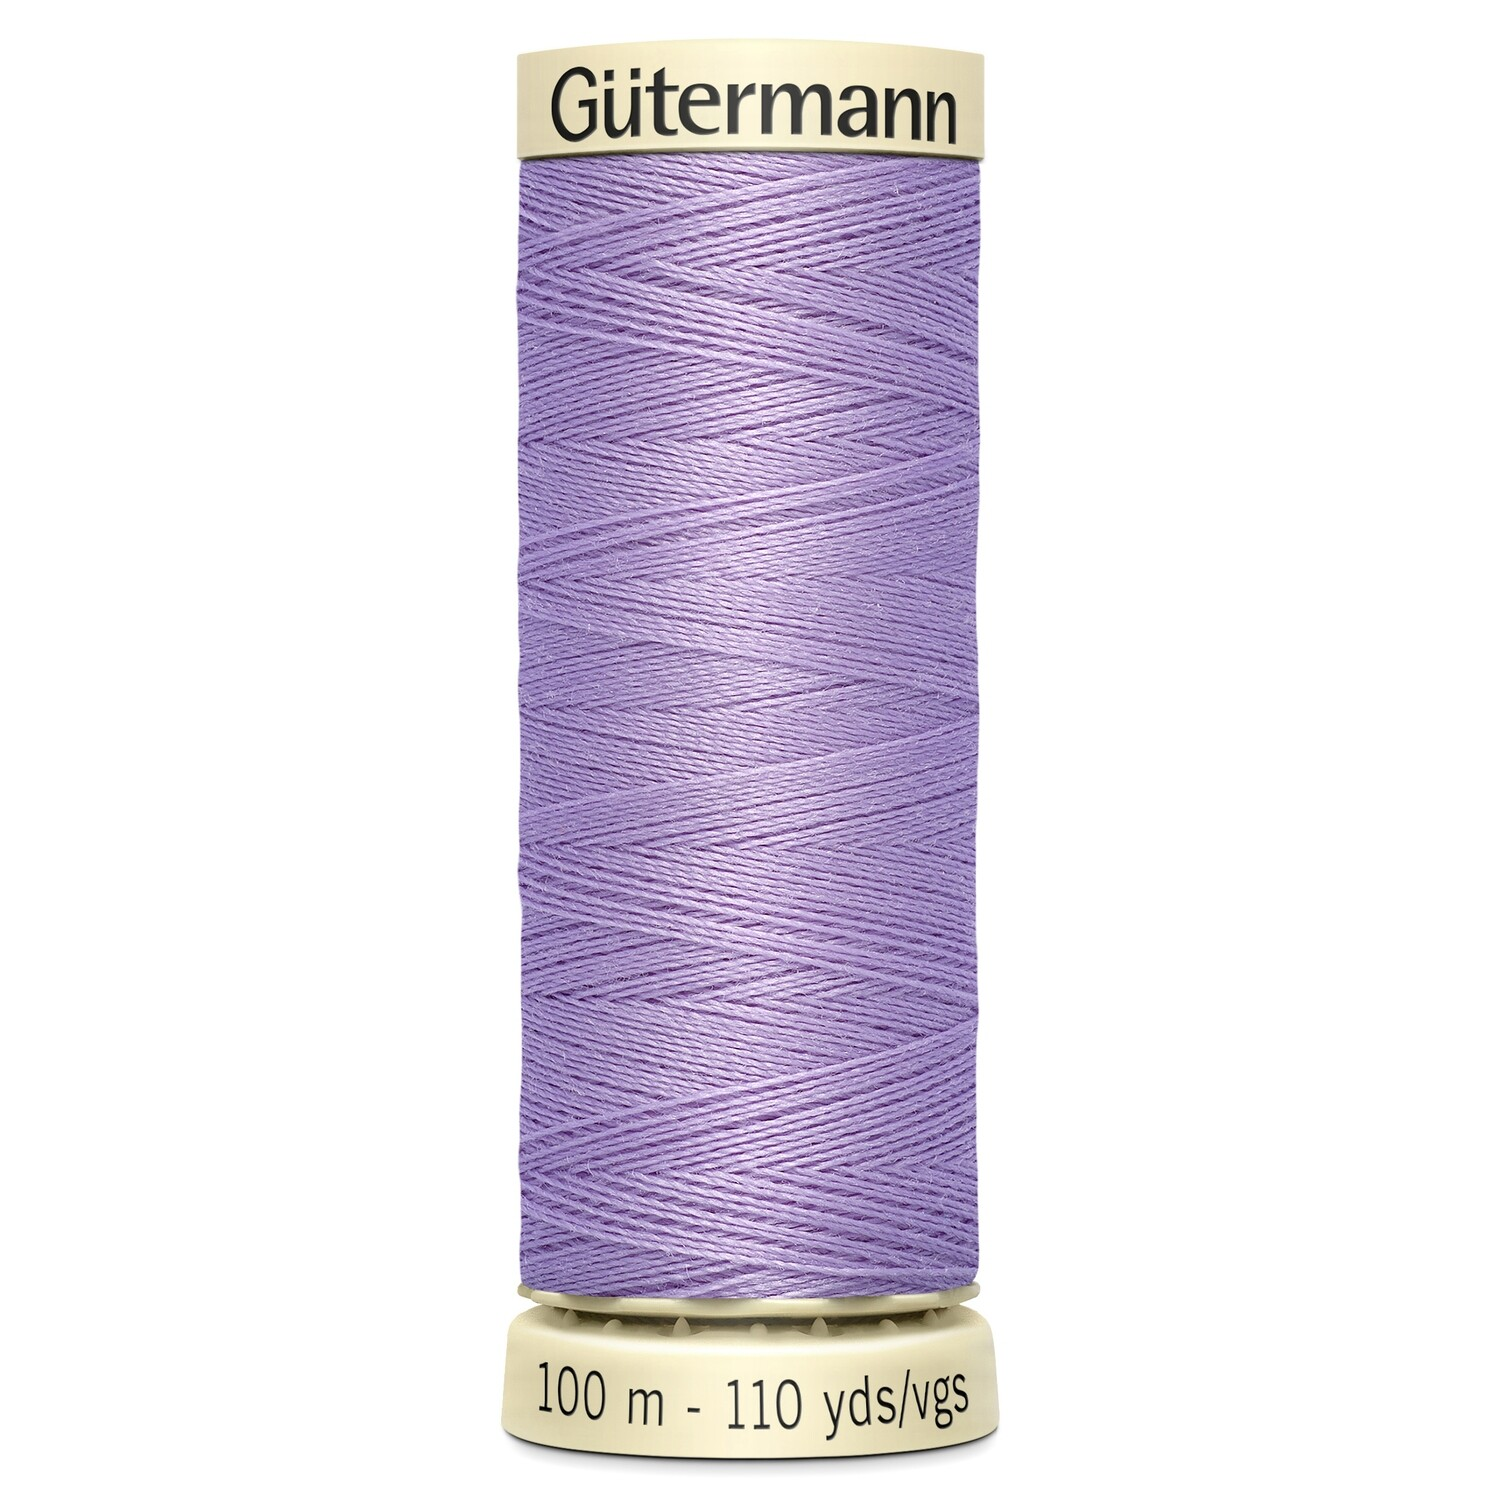 Gutermann Sew-All thread 158